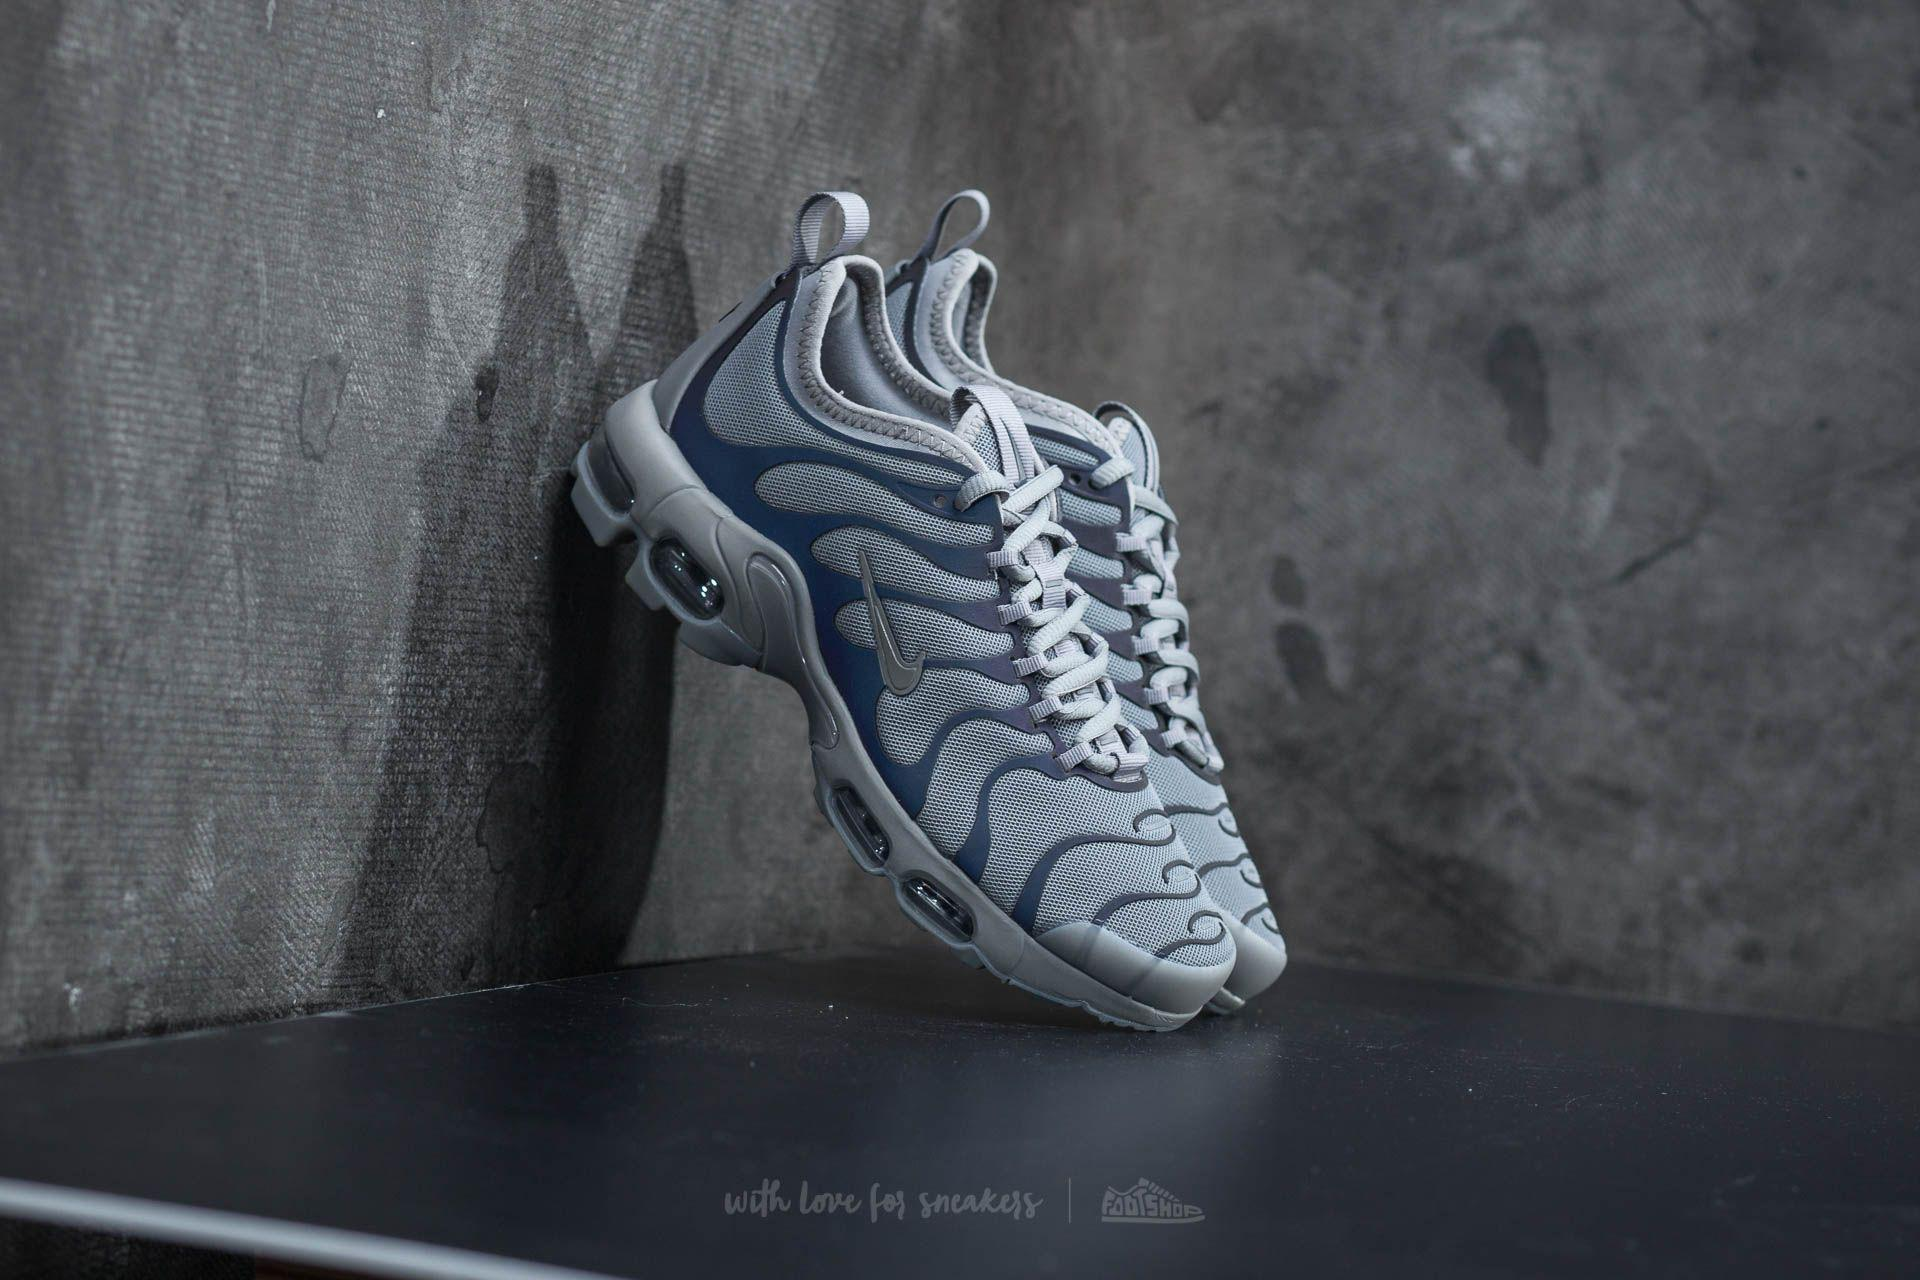 low priced 534d3 923c8 ... clearance lyst nike wmns air max plus tn ultra black dust dark grey in  gray bce85